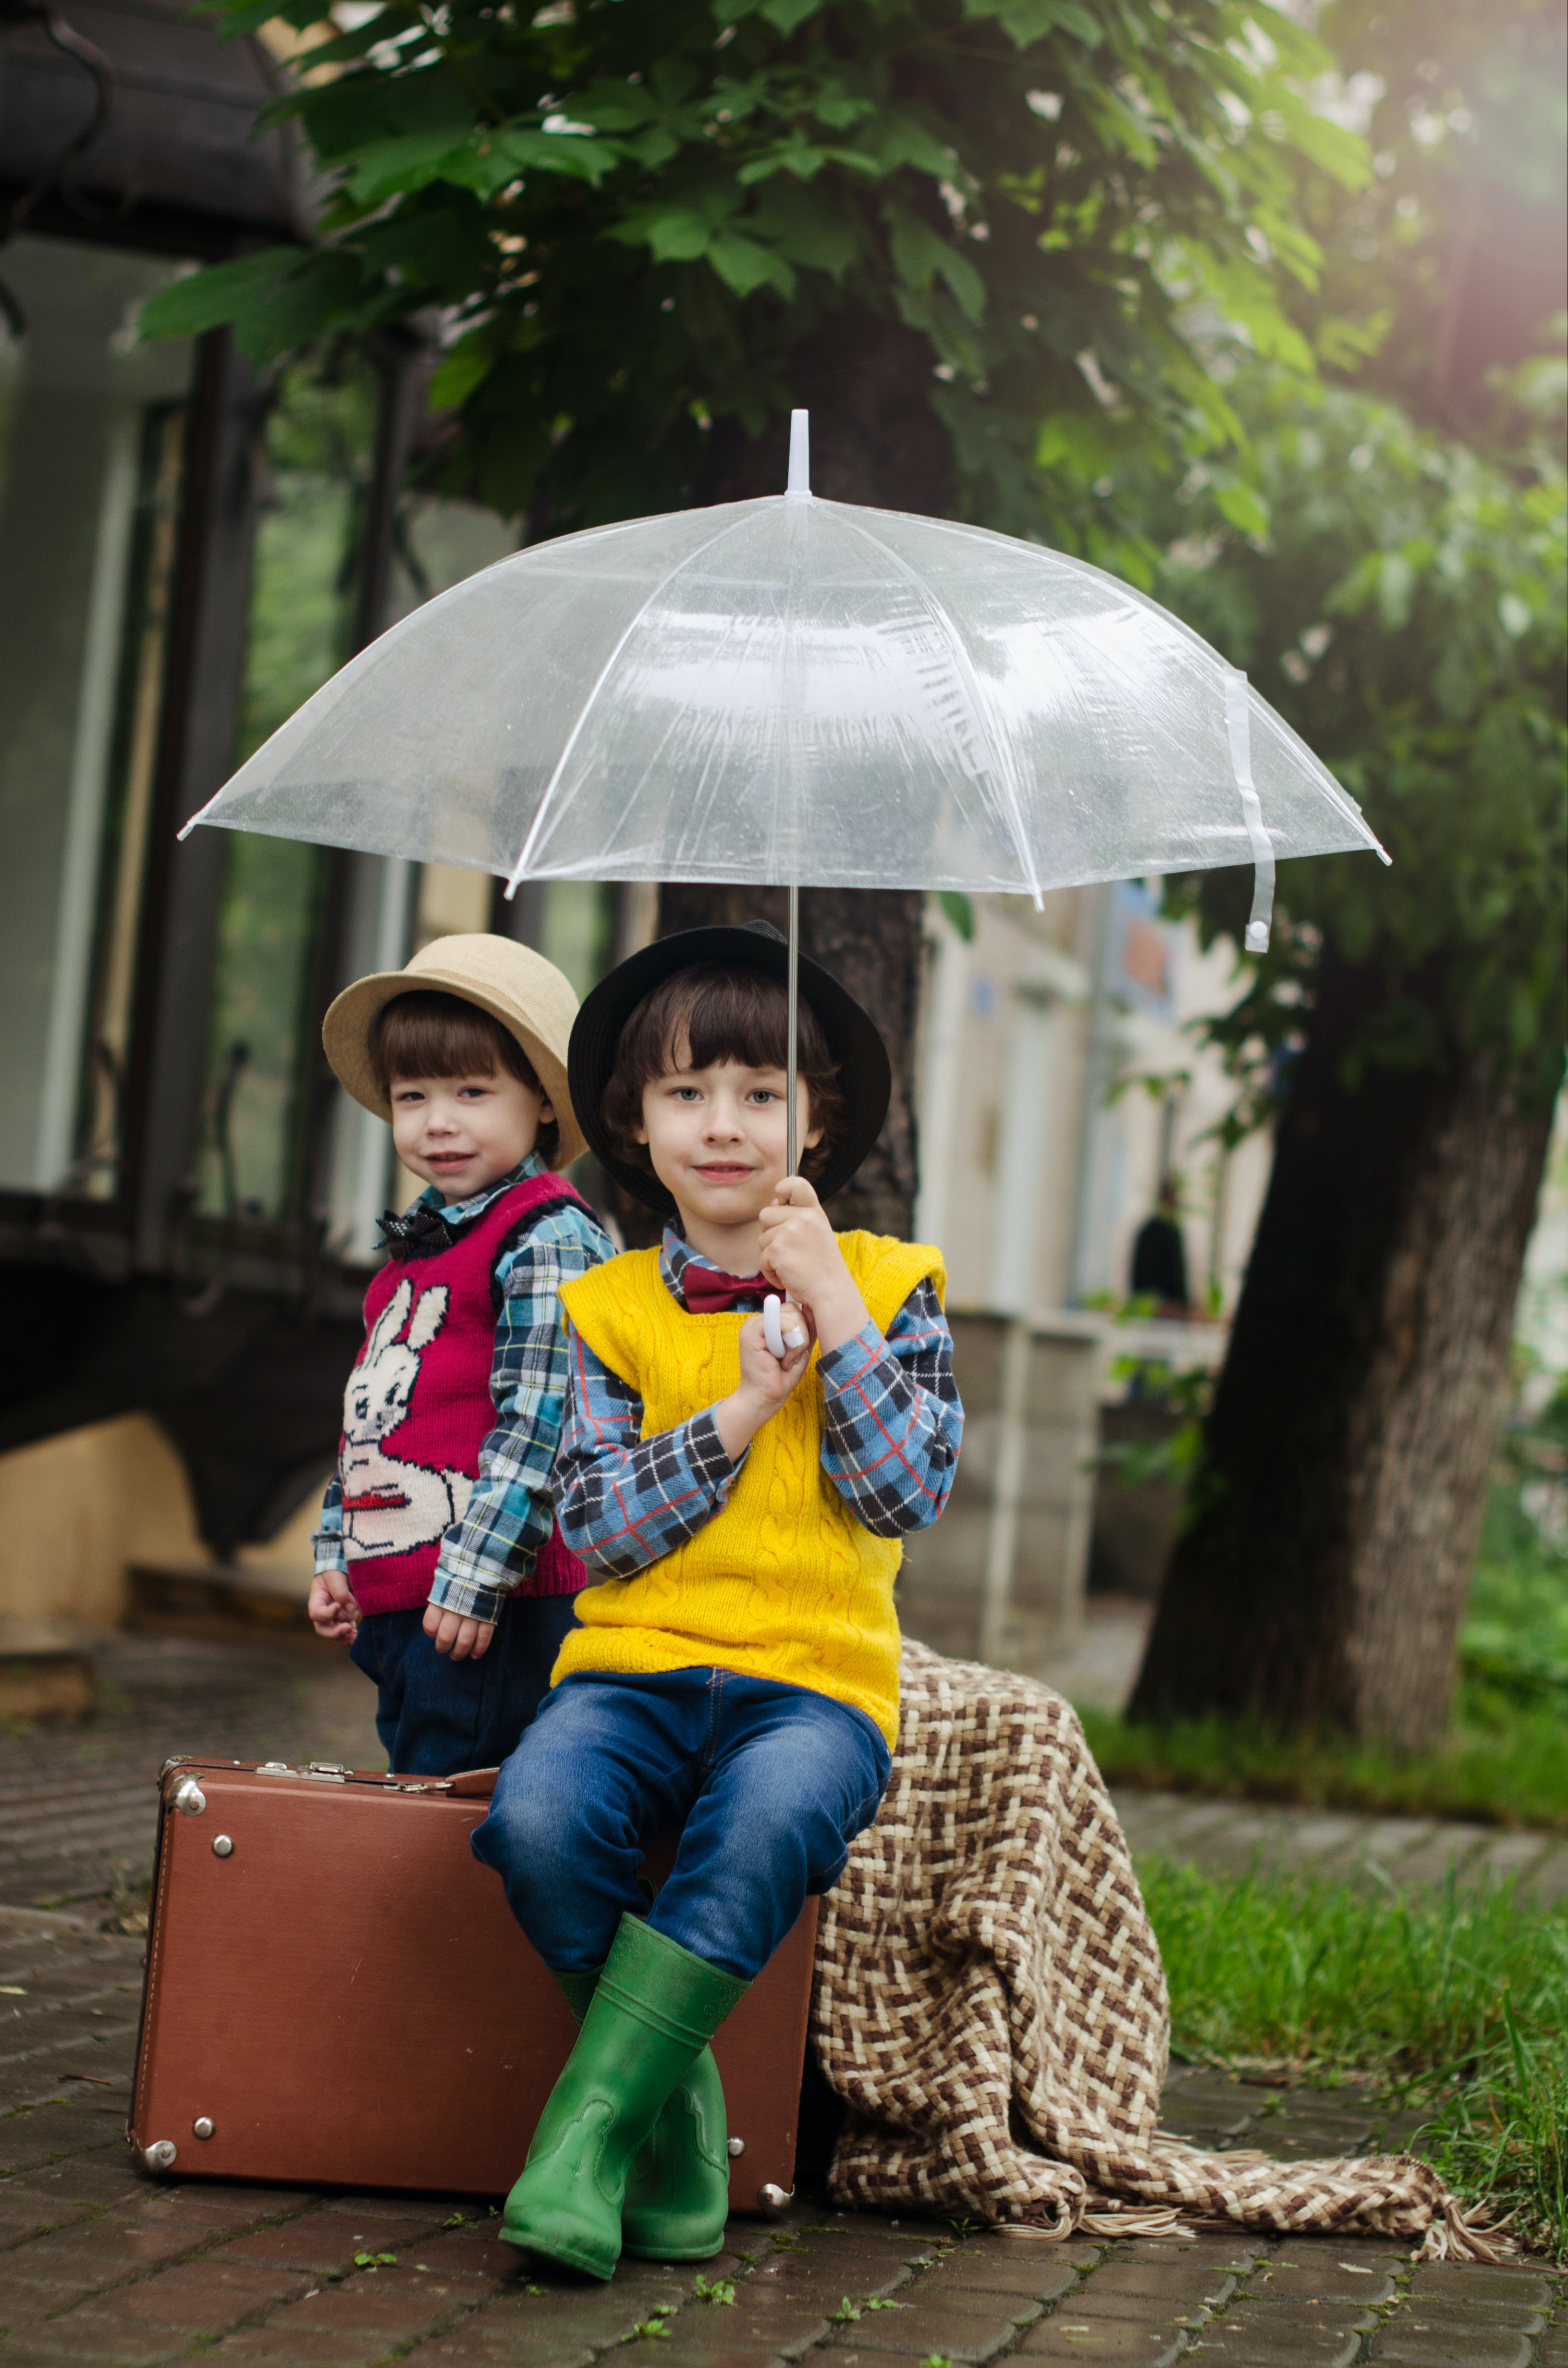 Girl Holding Umbrella While Sitting on Brown Suitcase